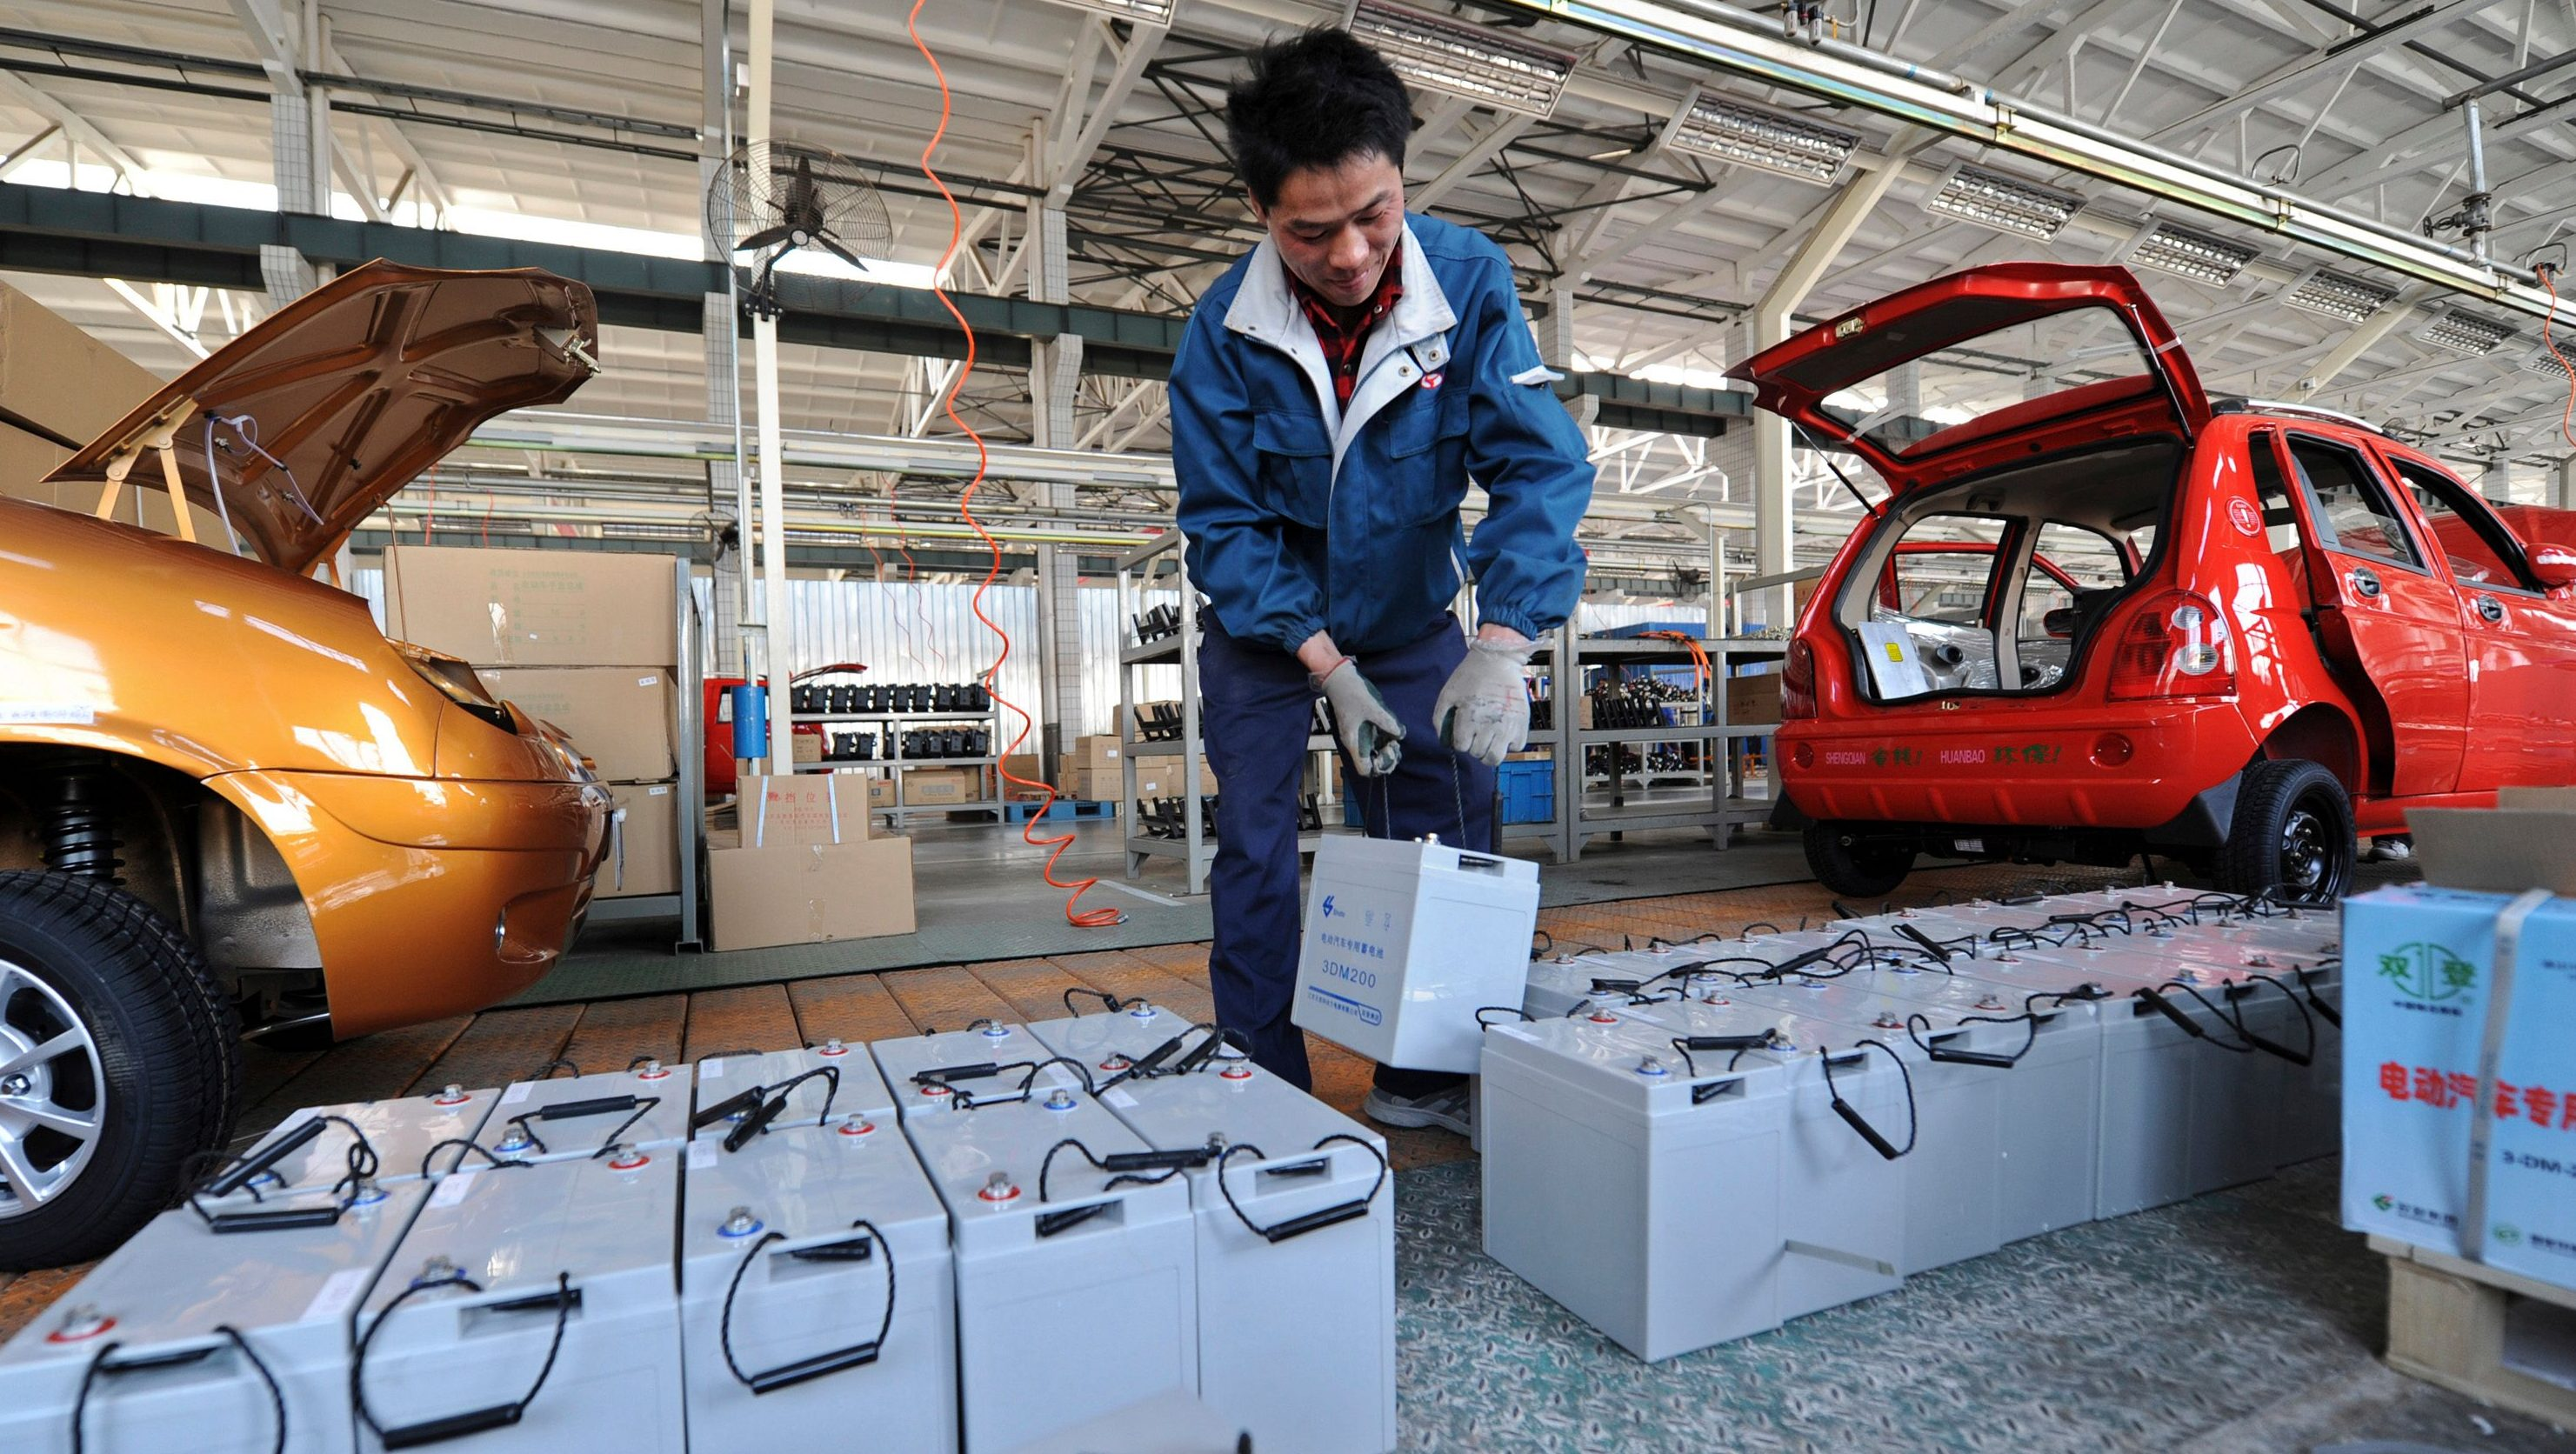 A employee carries a battery as he works on an assembly line of electric cars at a factory of Shandong Shifeng (Group) Co. Ltd. in Jinan, Shandong province April 6, 2012. Shifeng is the top player in the market, with about a 50 p ercent share. Shifeng delivered nearly 30,000 cars to its 200 dealer outlets across the country in 2011. Sales this year could hit 50,000, about a 13-fold increase over the level in 2008, the first full year of sales, said company vice president Lin Lianhua. Picture taken April 6, 2012. REUTERS/Stringer (CHINA - Tags: BUSINESS TRANSPORT ENERGY) - GM1E84J0Z7Q01